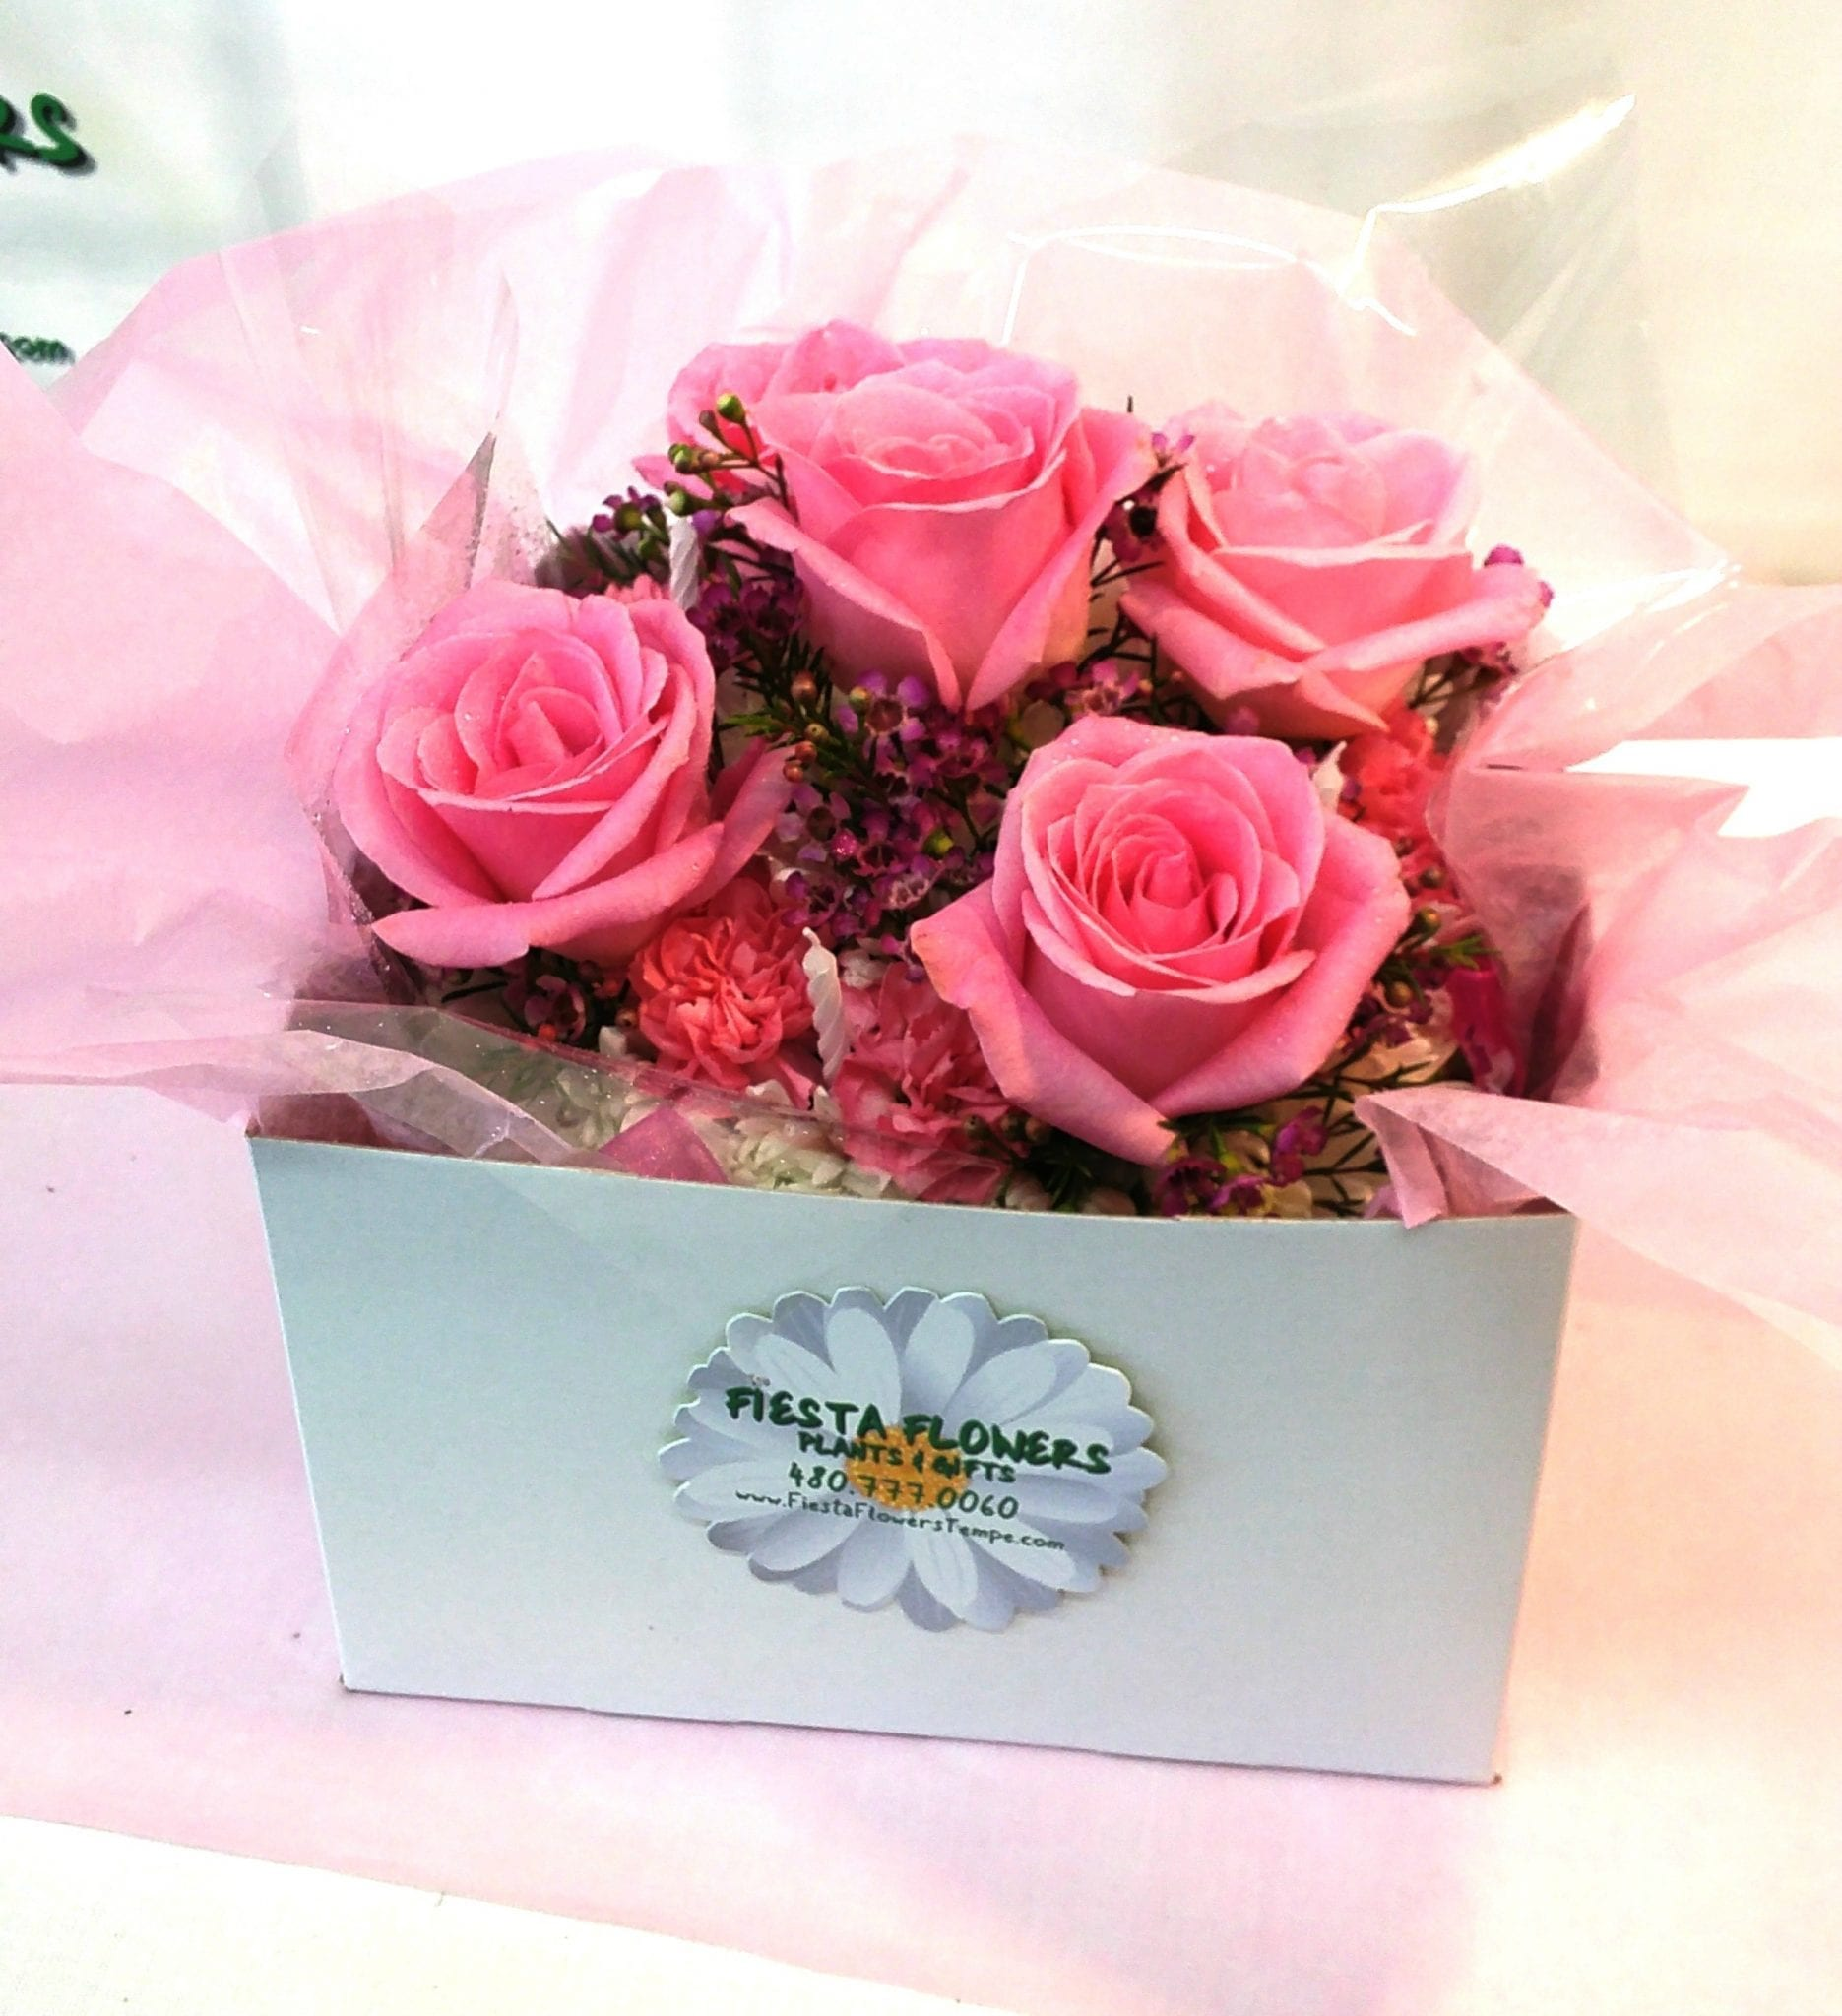 SAME DAY DELIVERY Fiesta Premium Cake Fiesta Flowers Plants & Gifts